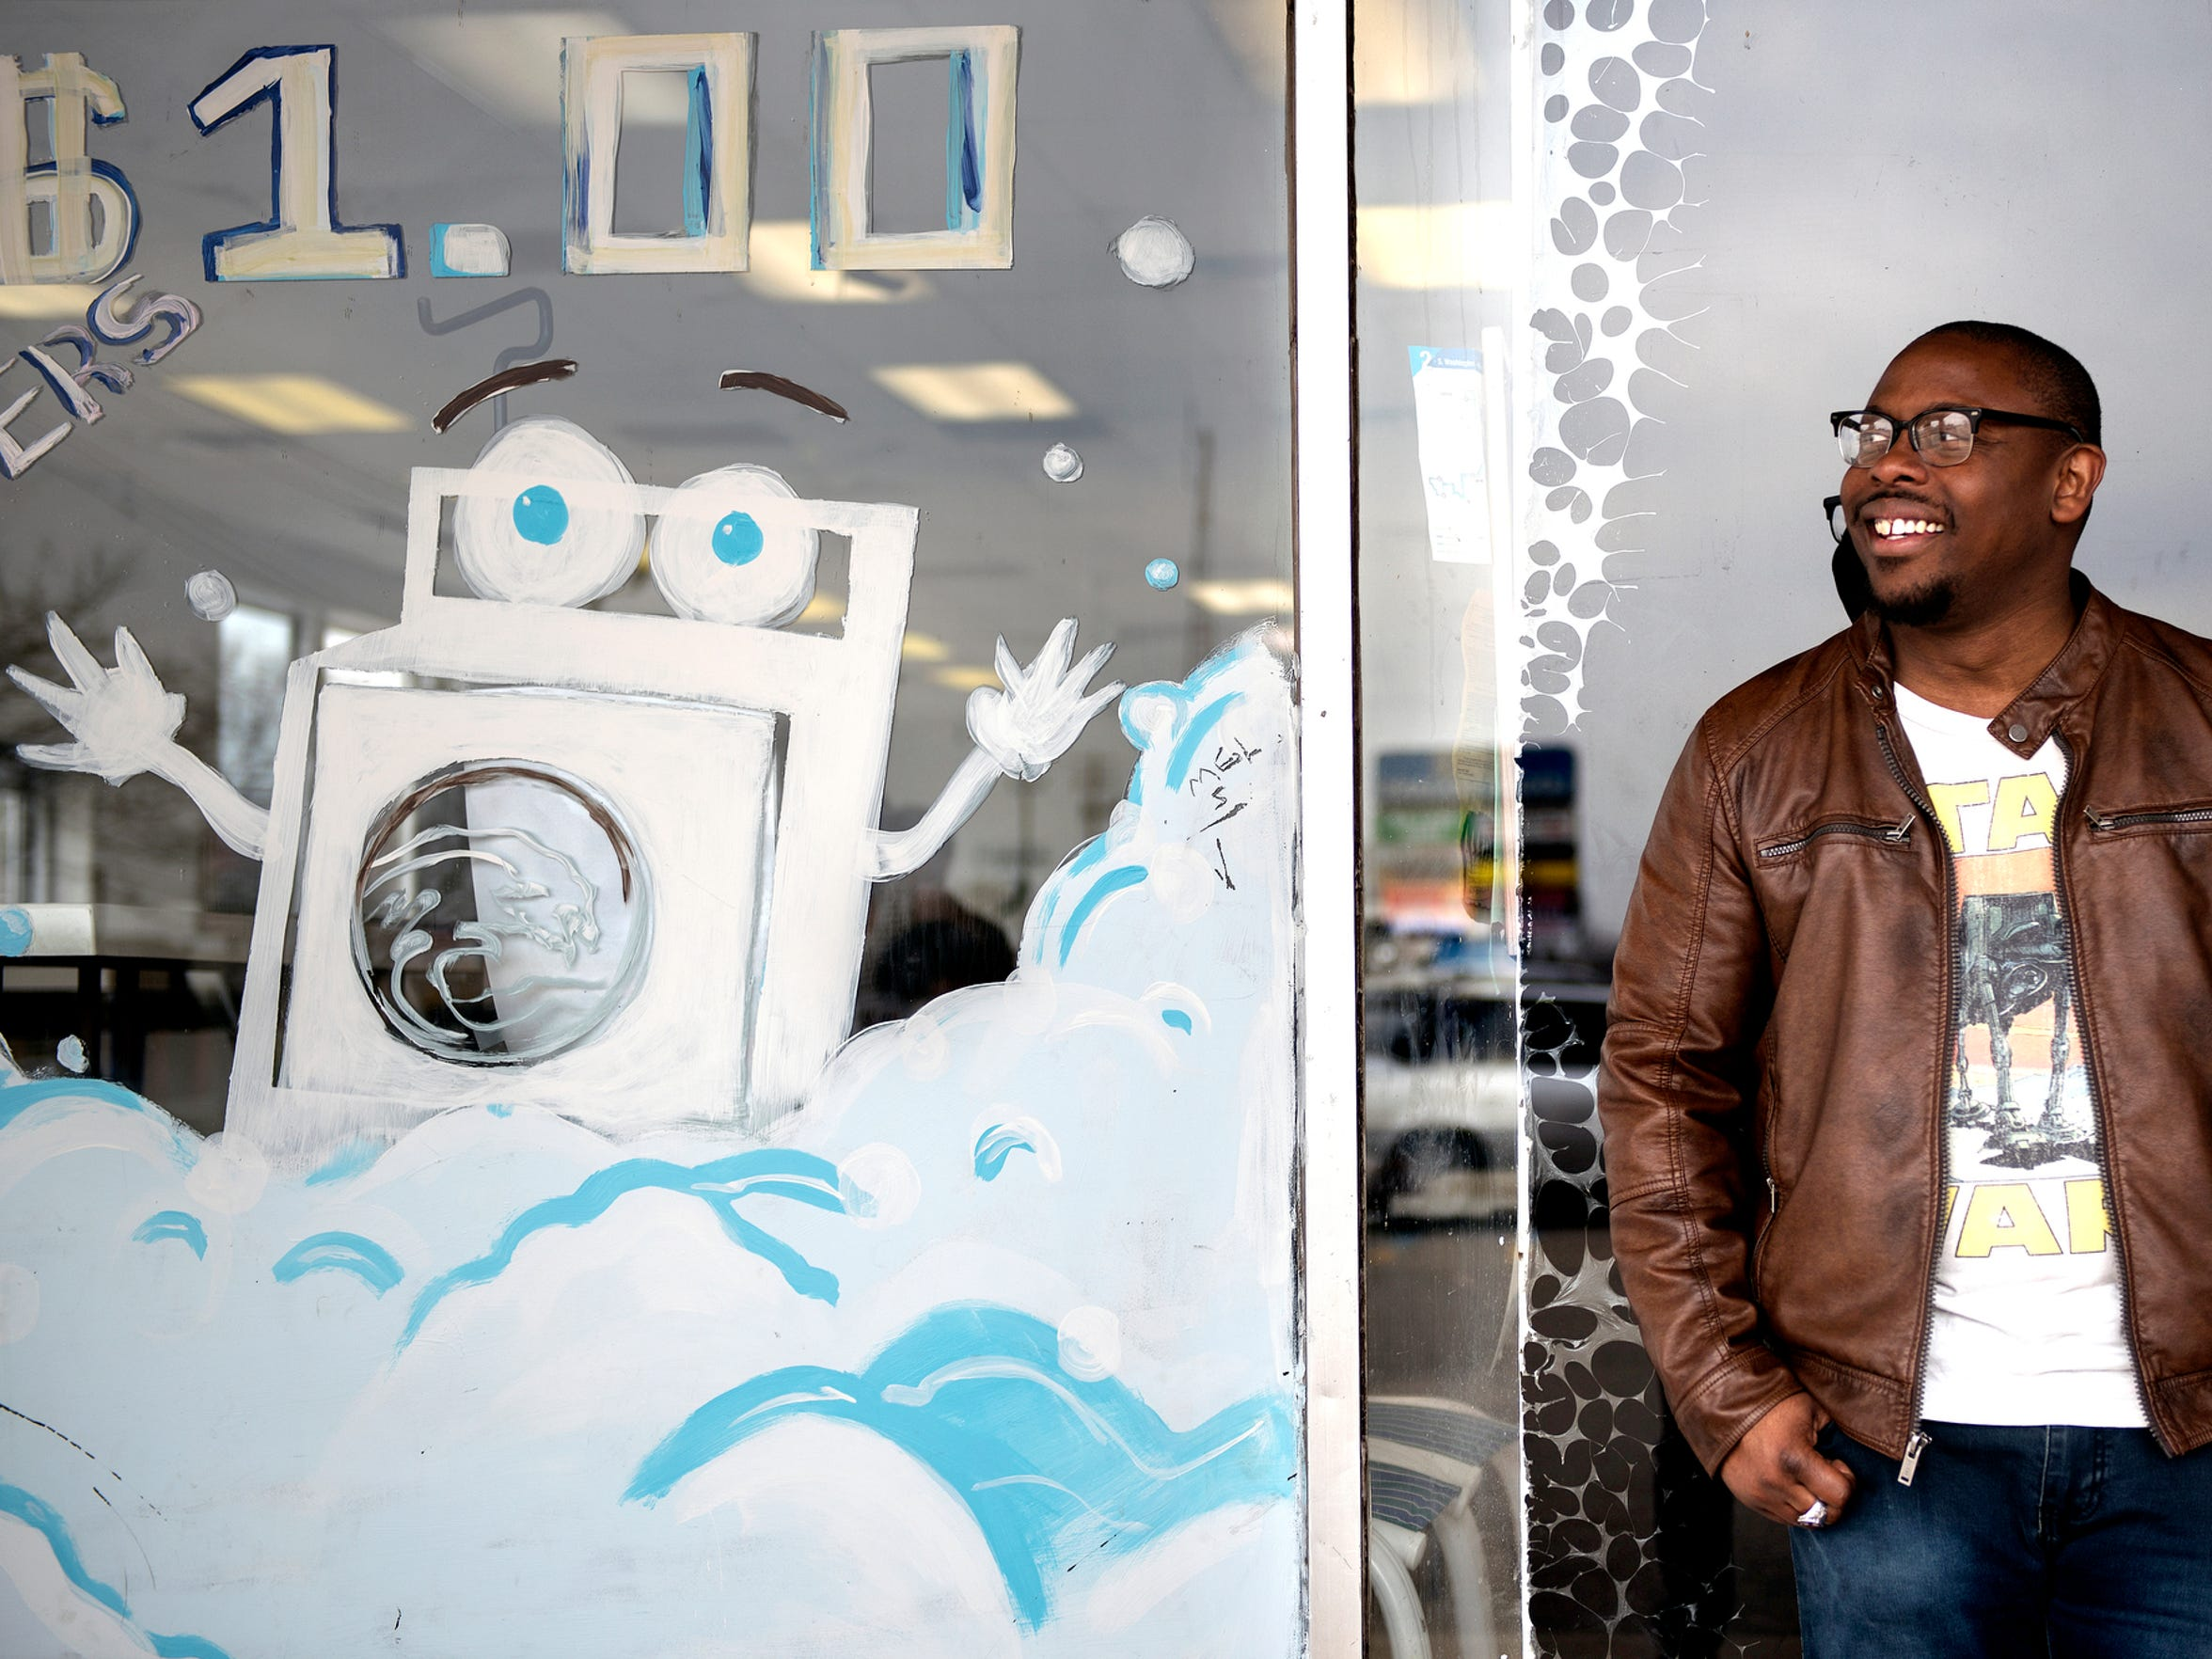 Ryan Holmes, 34, is an artist who grew up in Delta Township and lives in south Lansing. He recently painted a mural at the All Washed Up laundromat at 3222 S. Martin Luther King Blvd.